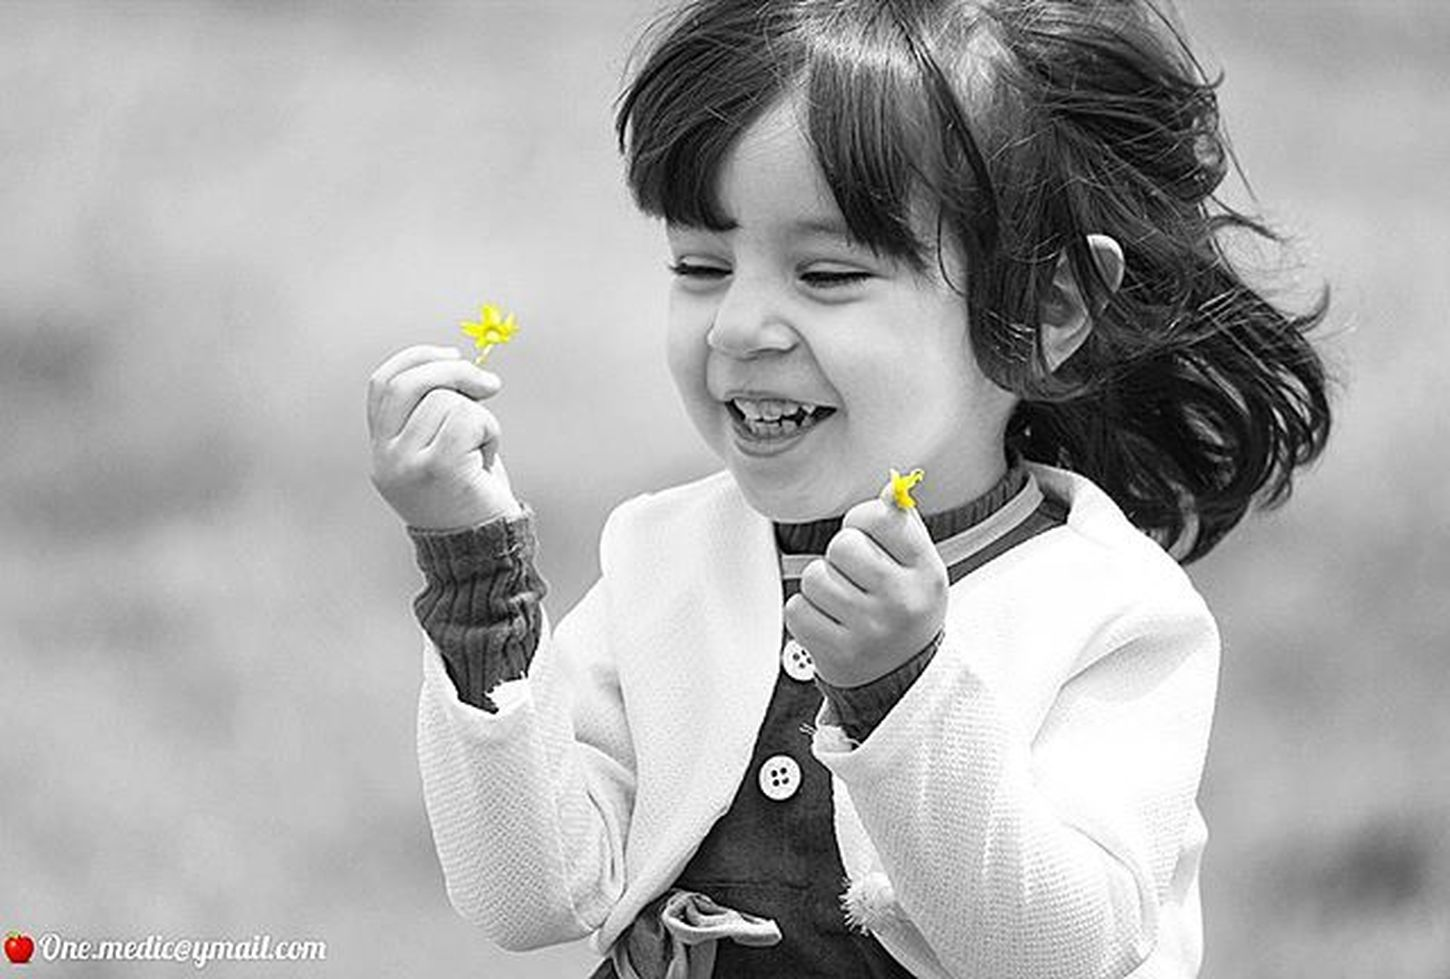 ❤ My_girl Portrait Iran Onemedic One .medic@ymail.com Children Girl Life Smile Hand Flower Yellow Happy Asra Blackandwhite Bw Blackwhite Monocrom Live Canon پرتره ایران اینستاگرام اسرا سیاه_سفید مونوکروم زرد گلشادی